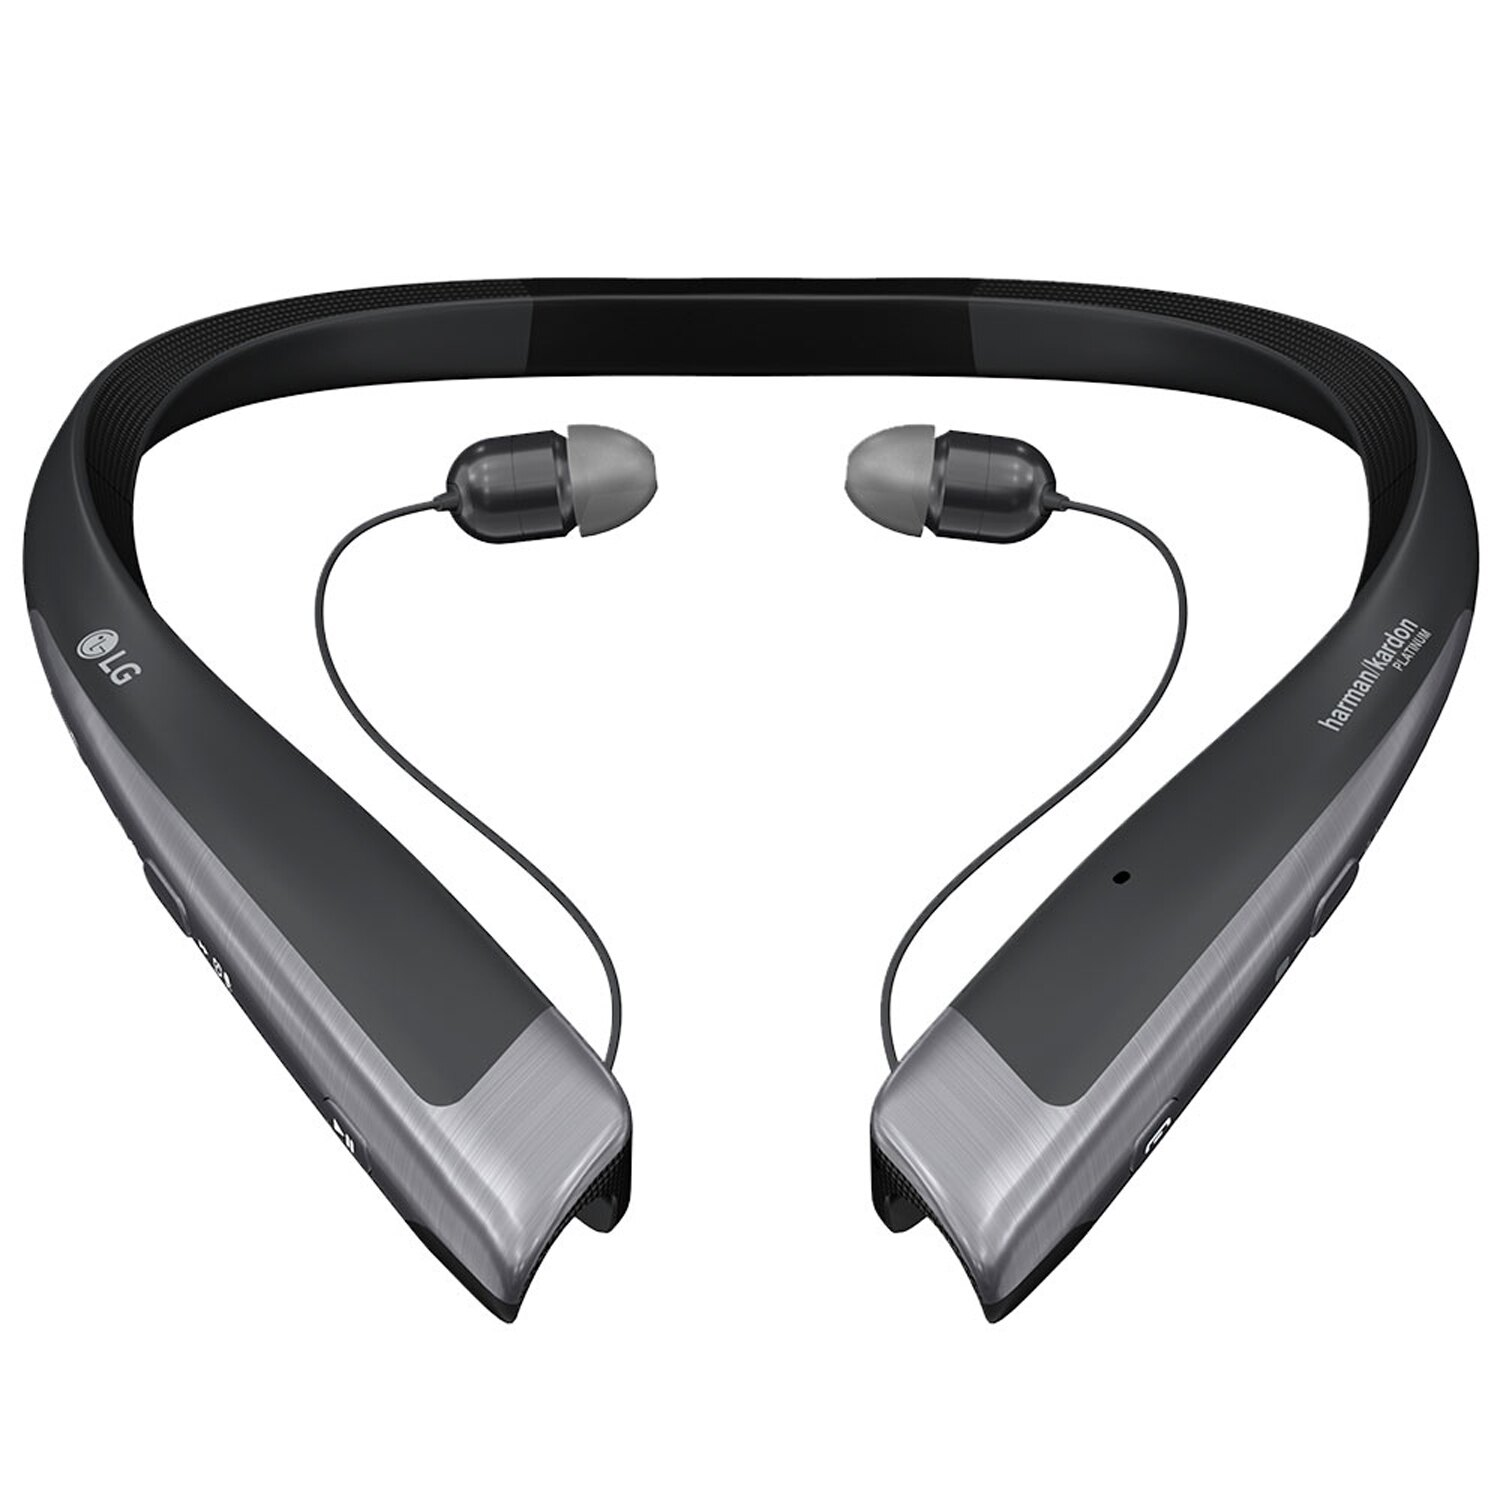 LG Tone Platinum HBS-1100 Bluetooth Headset Harman Kardon Platimum